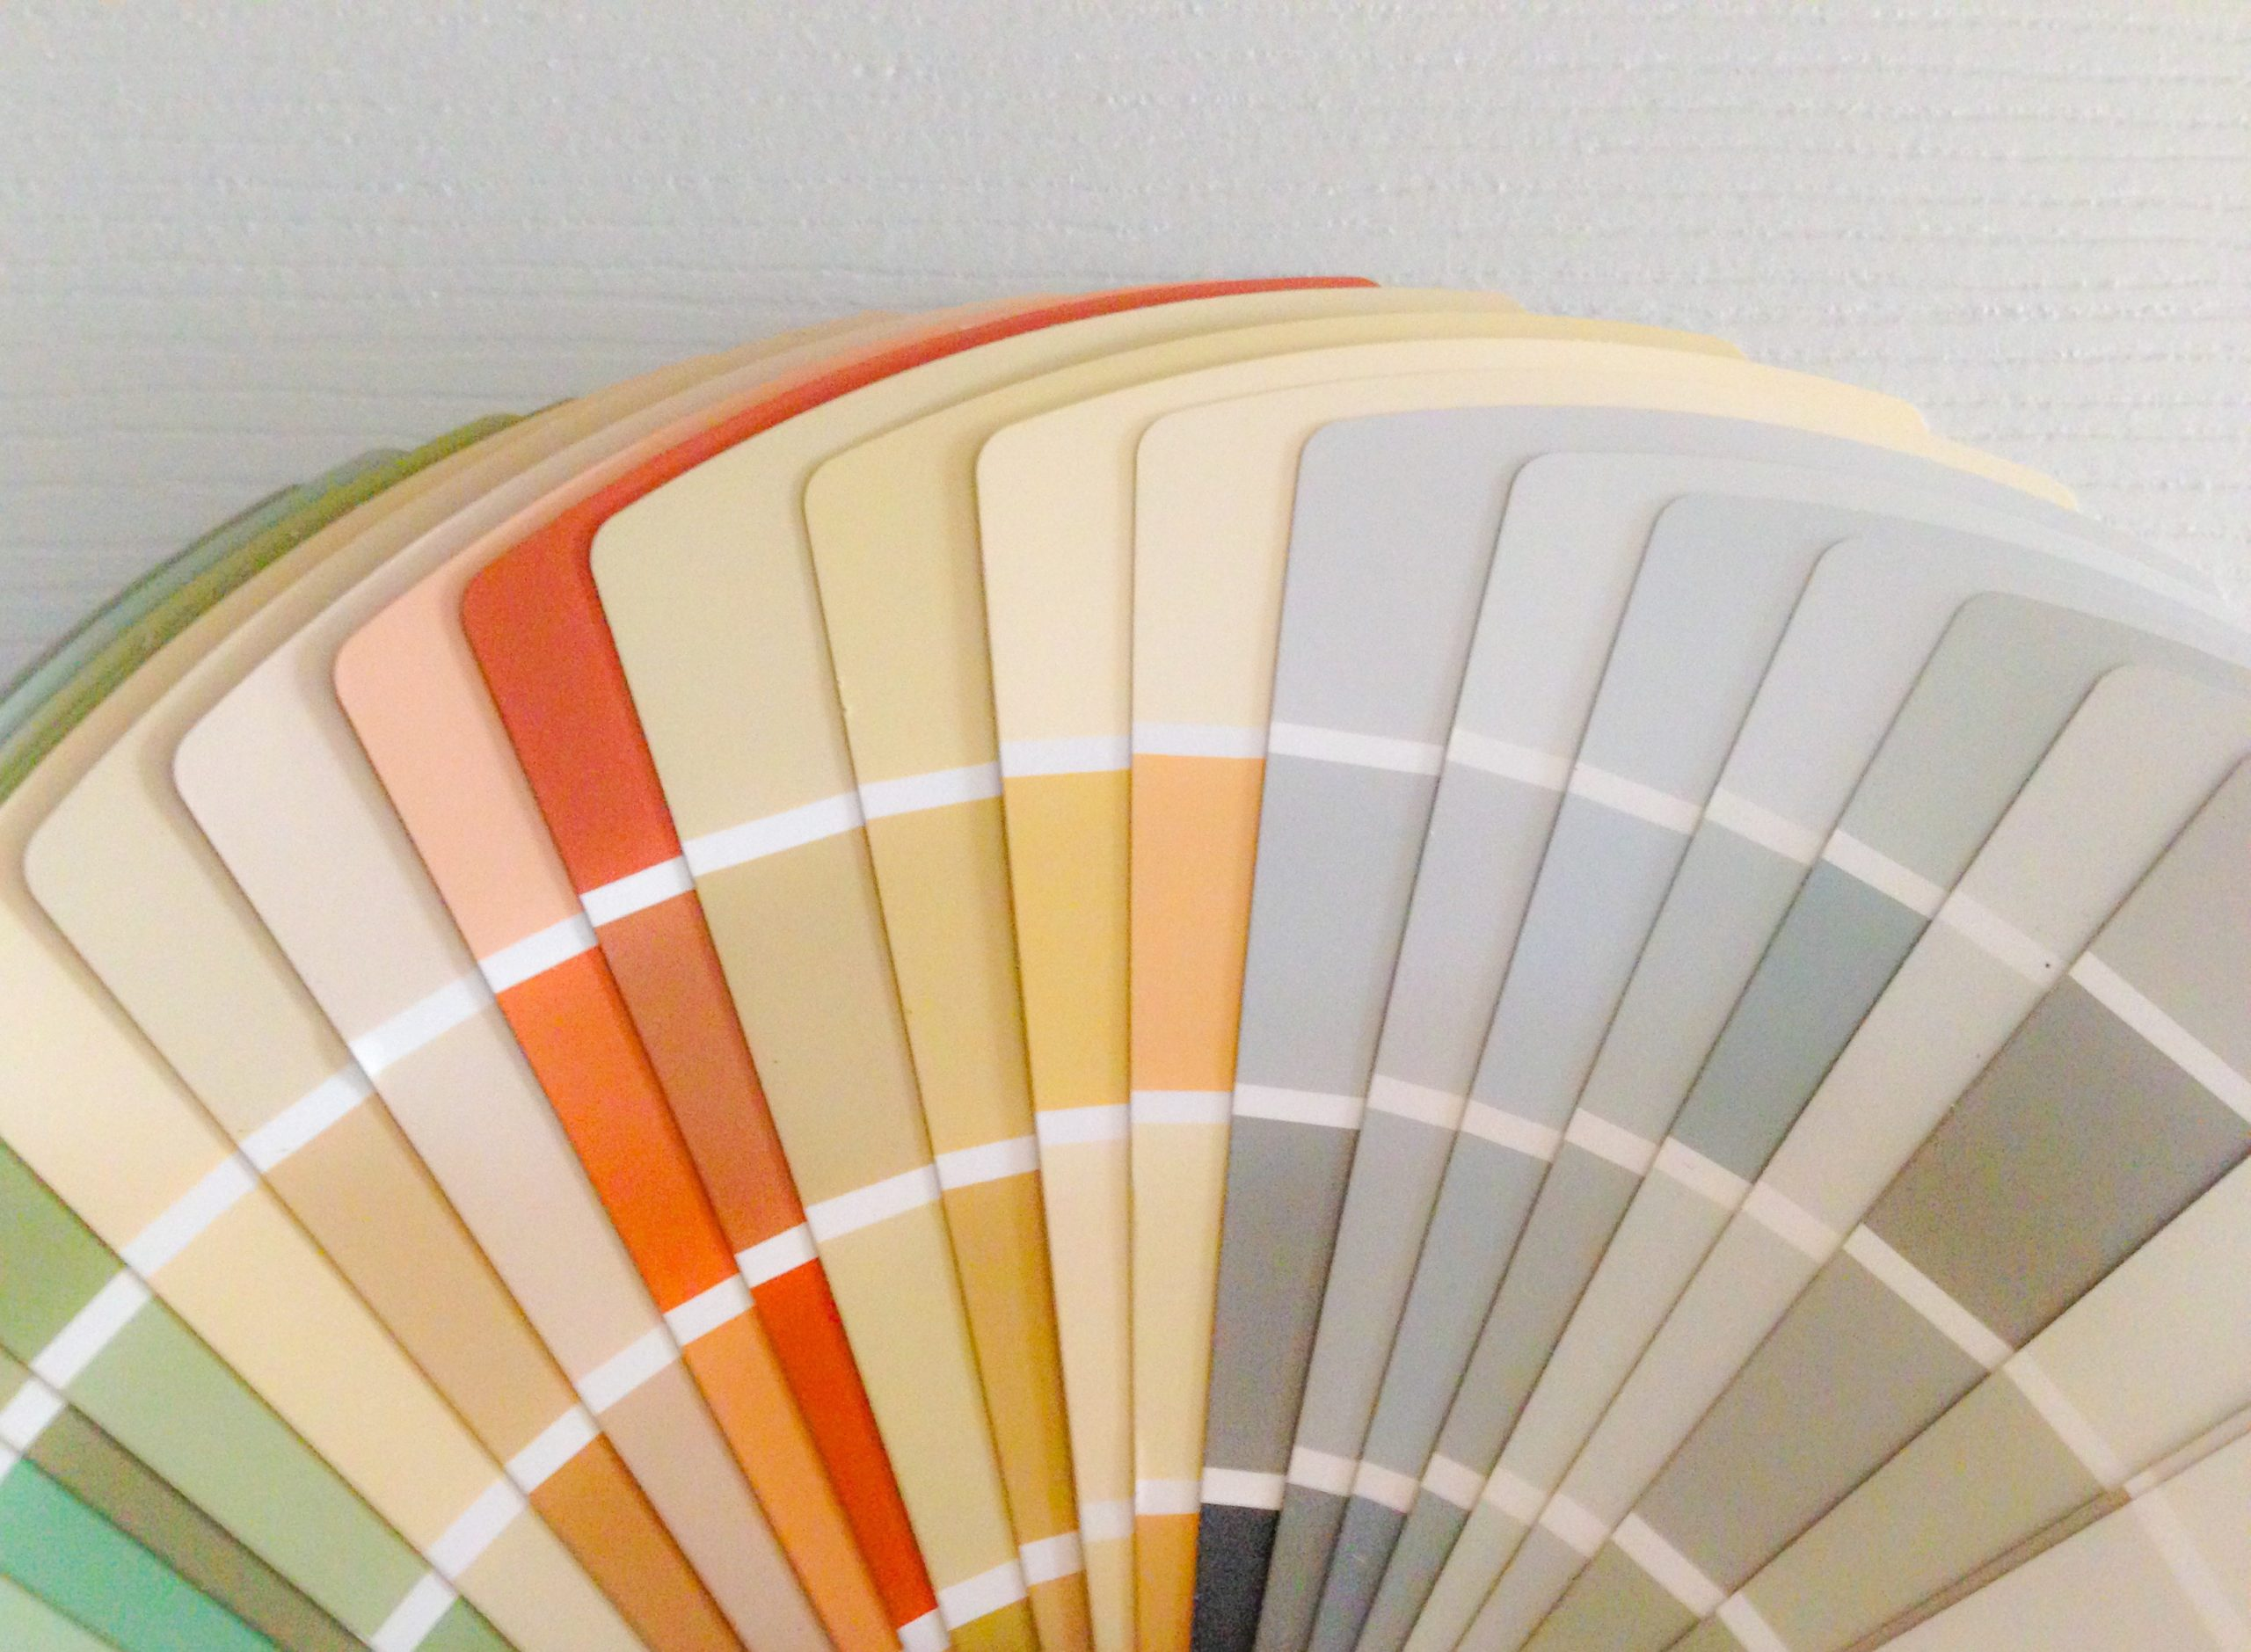 Paint color swatch to pick a color for interior design projects.